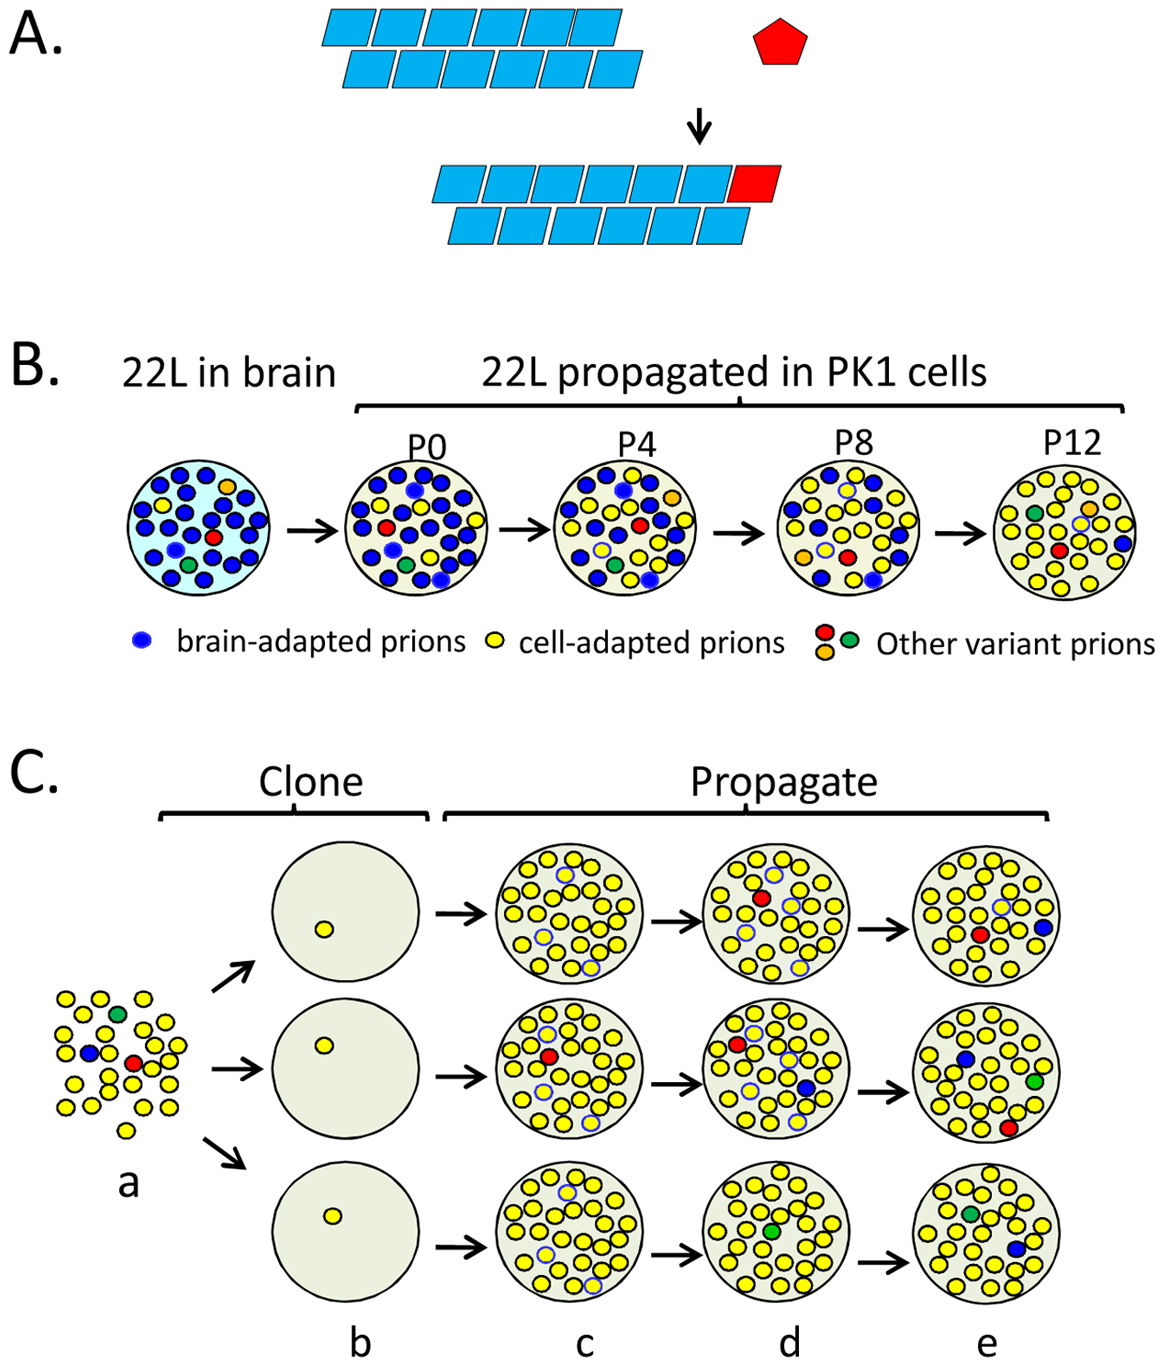 Propagation, mutation, and selection of prions in cultured cells.